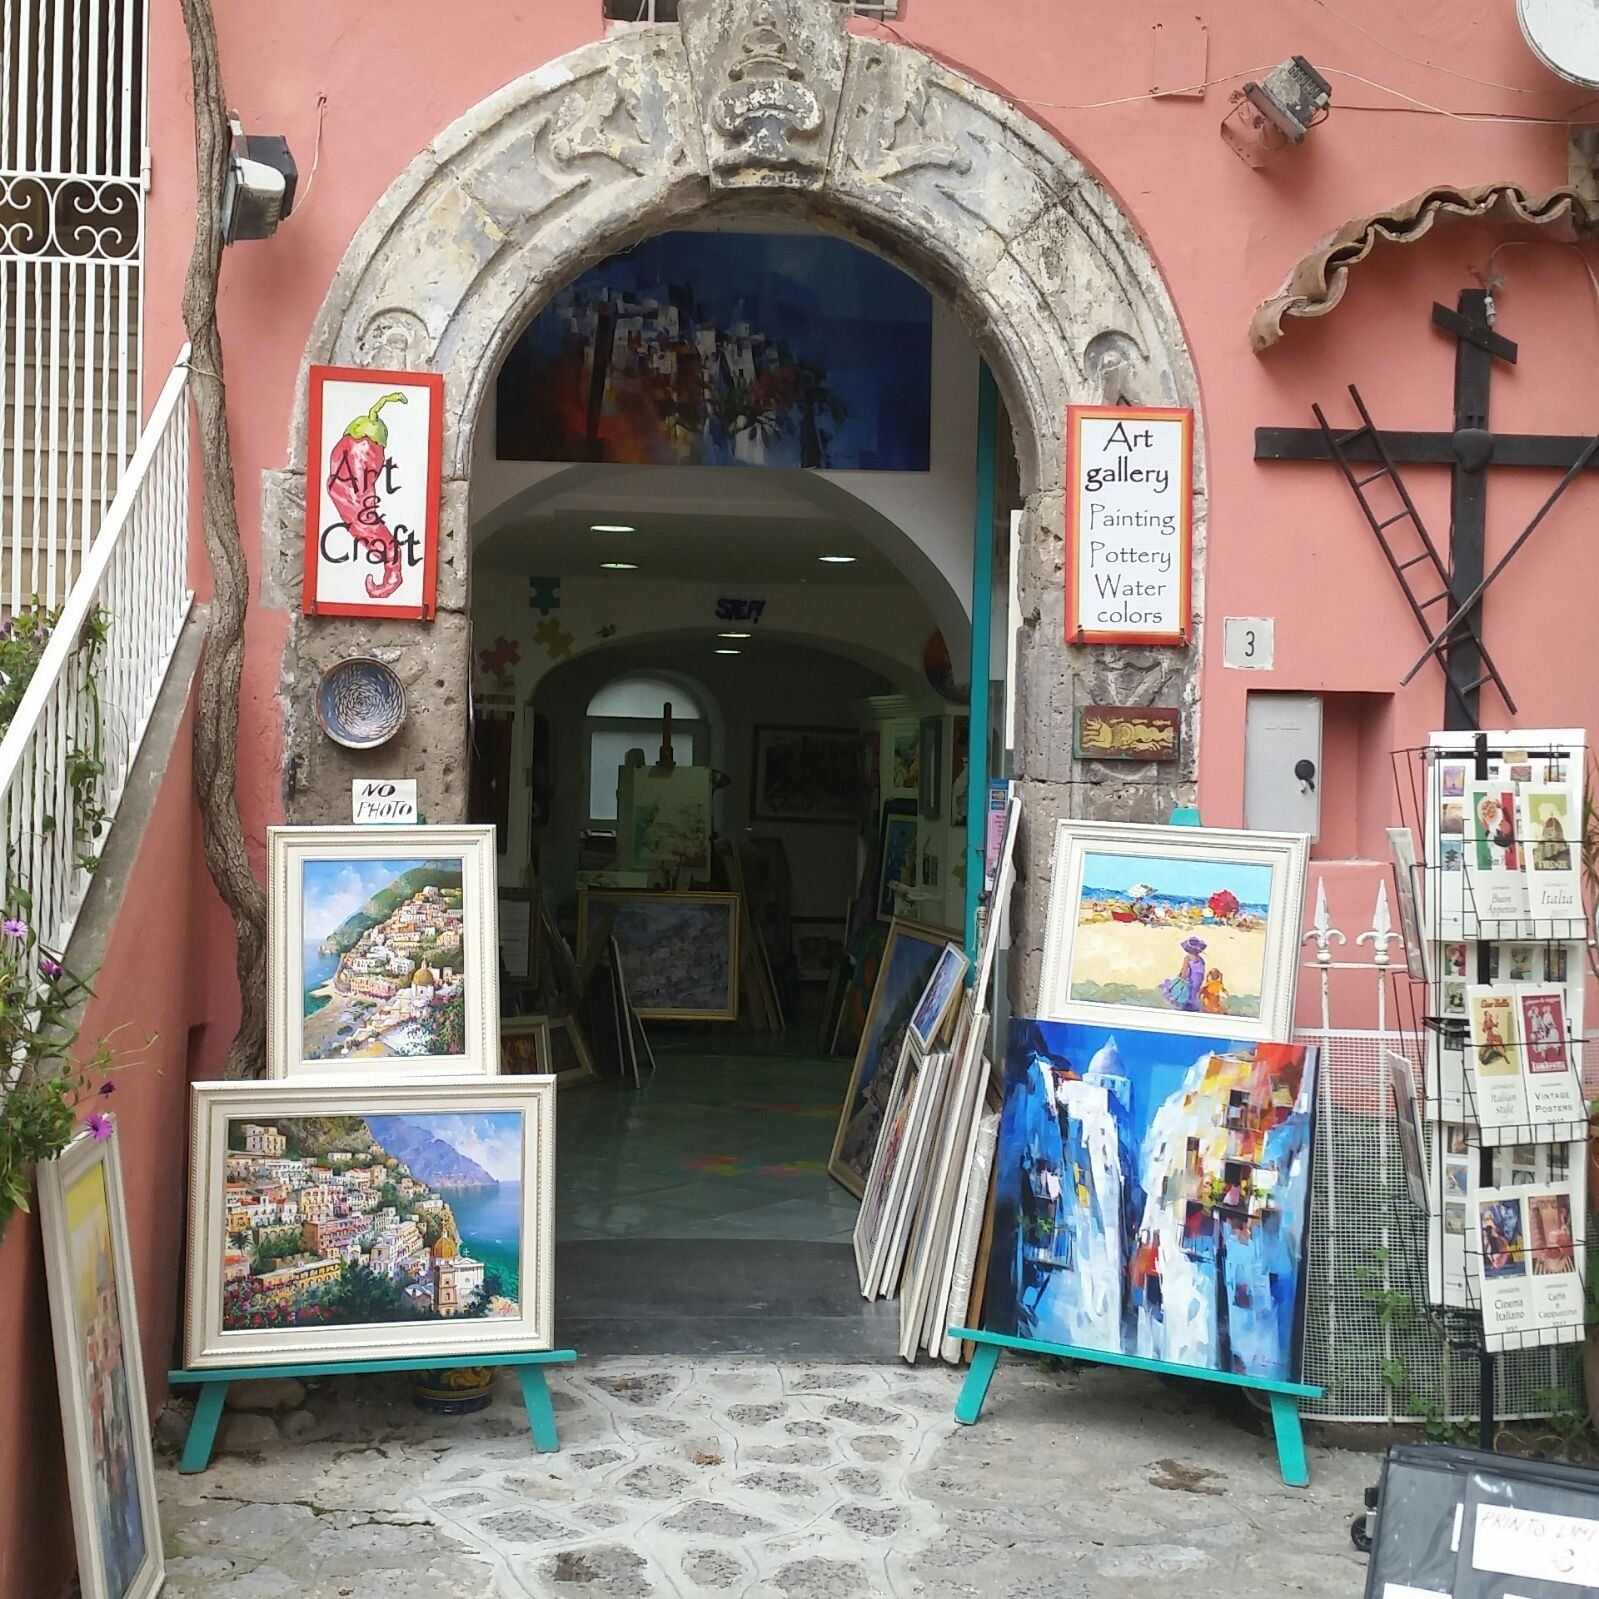 Art Amp Craft Gallery Positano See 38 Reviews Articles And